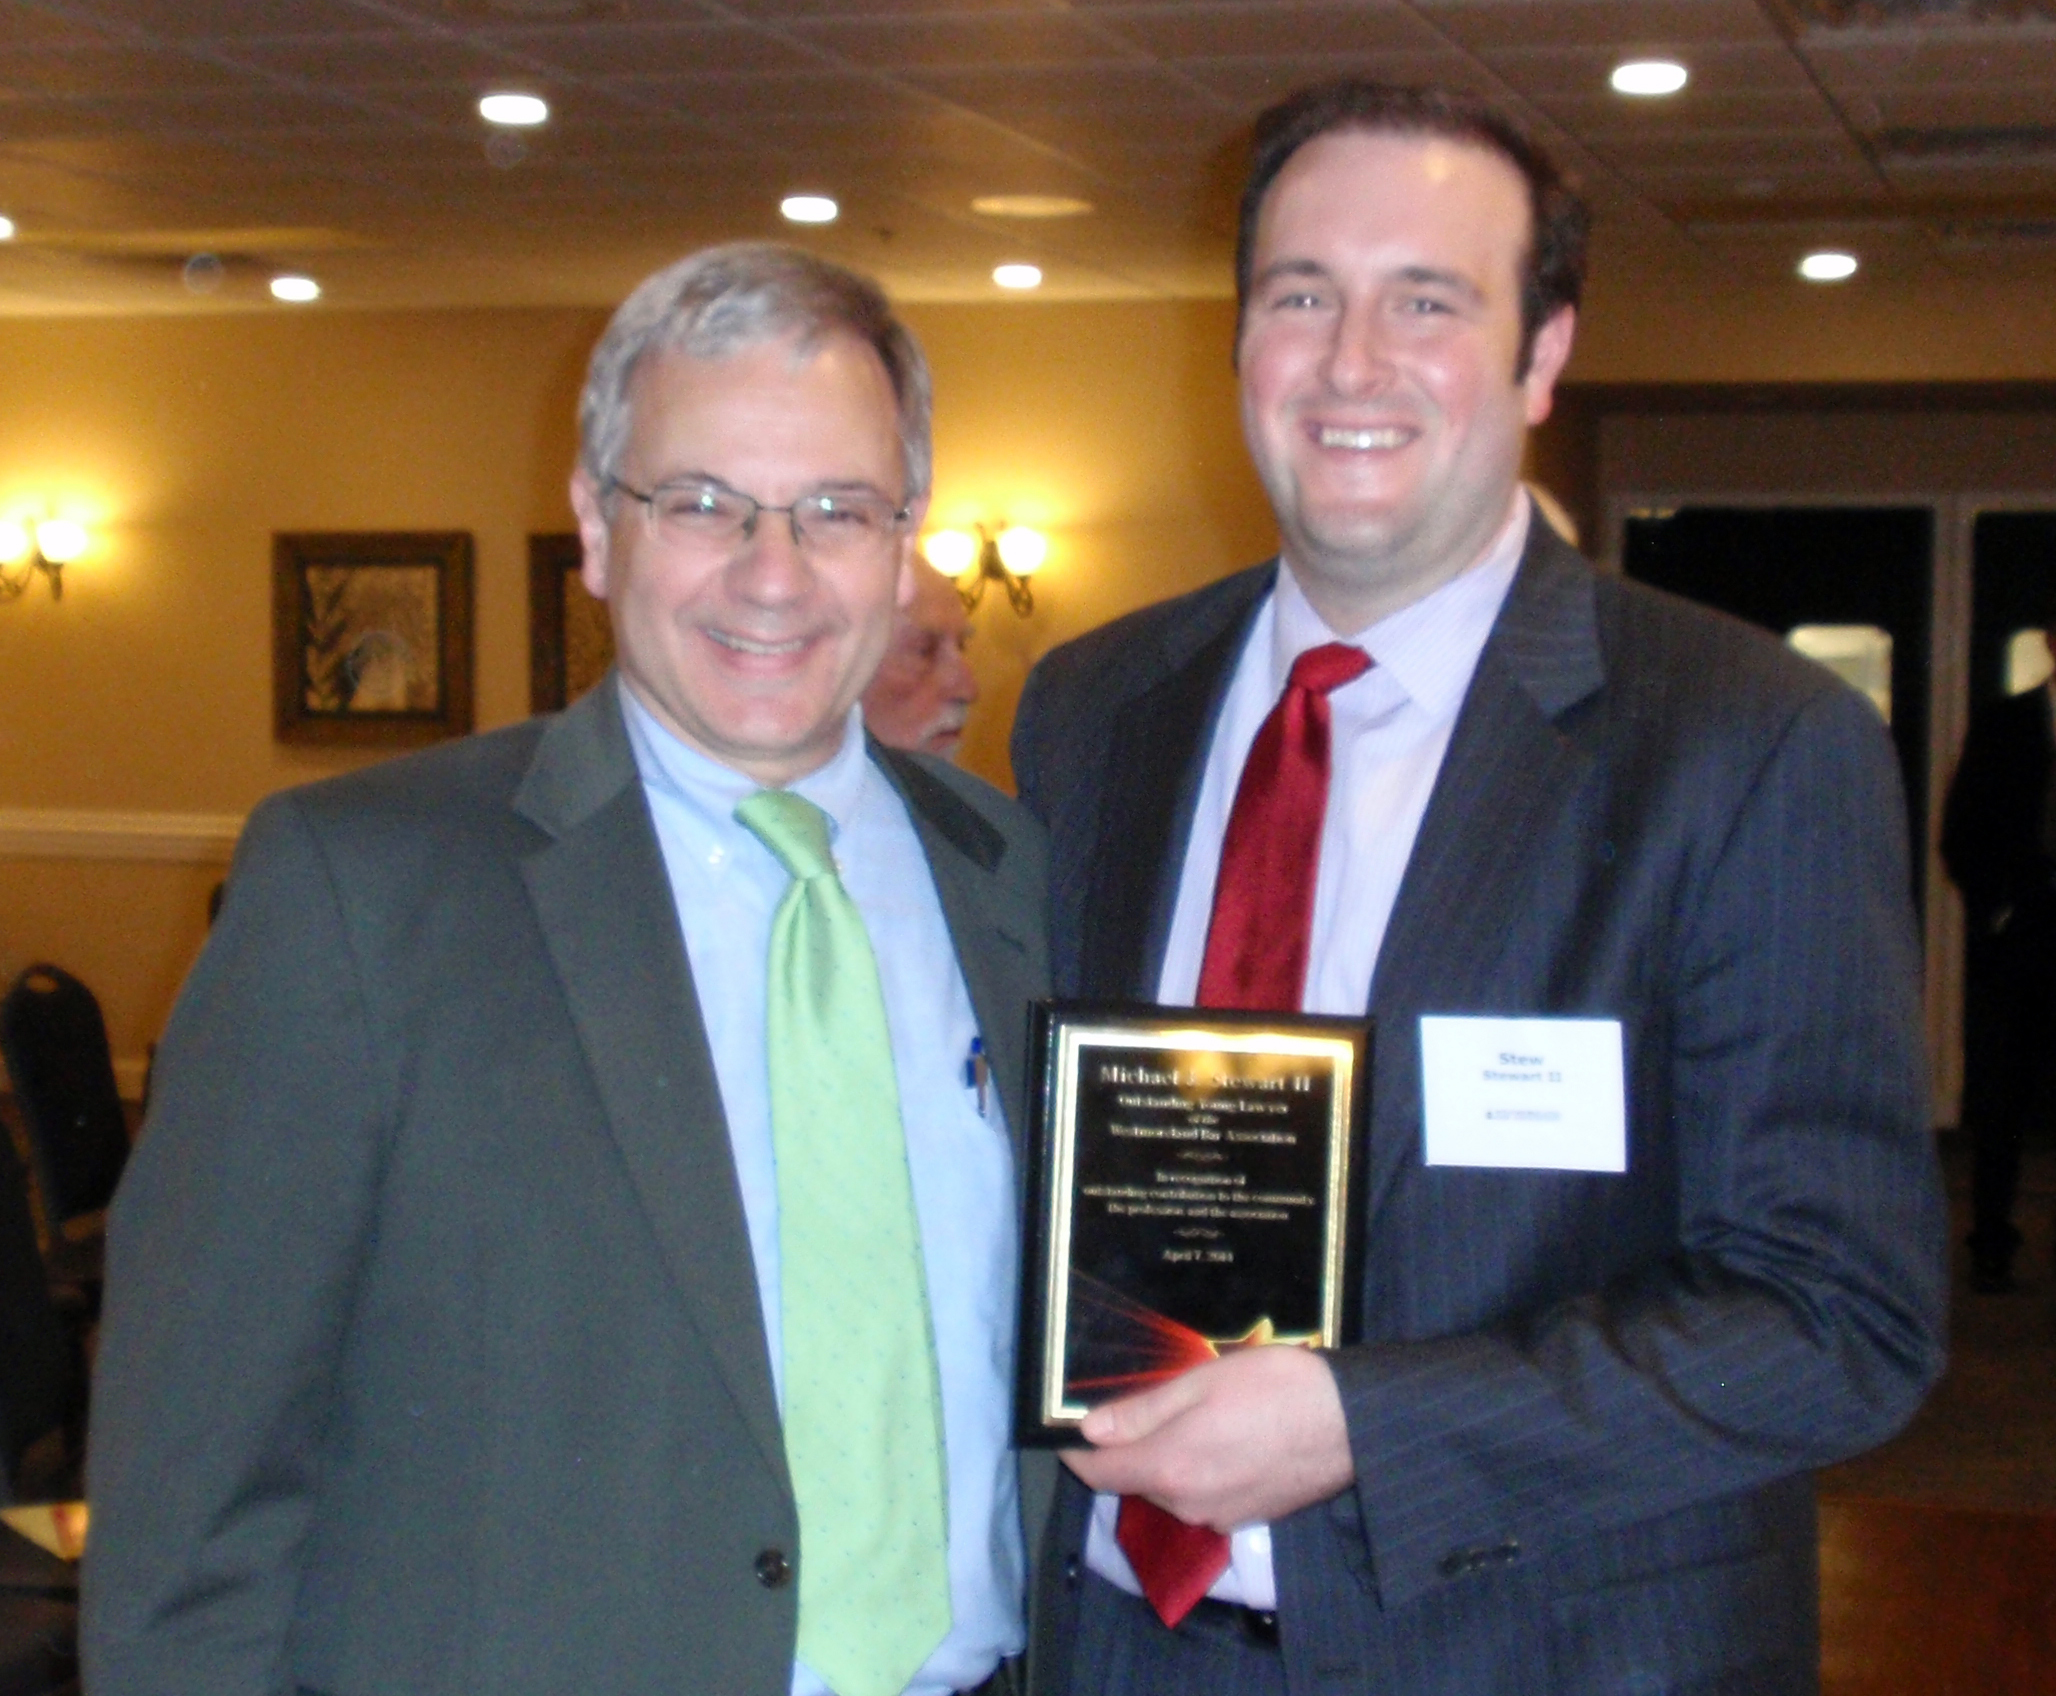 WBA Past President David DeRose awards the 2014 Outstanding Young Lawyer Award to Michael J. Stewart II